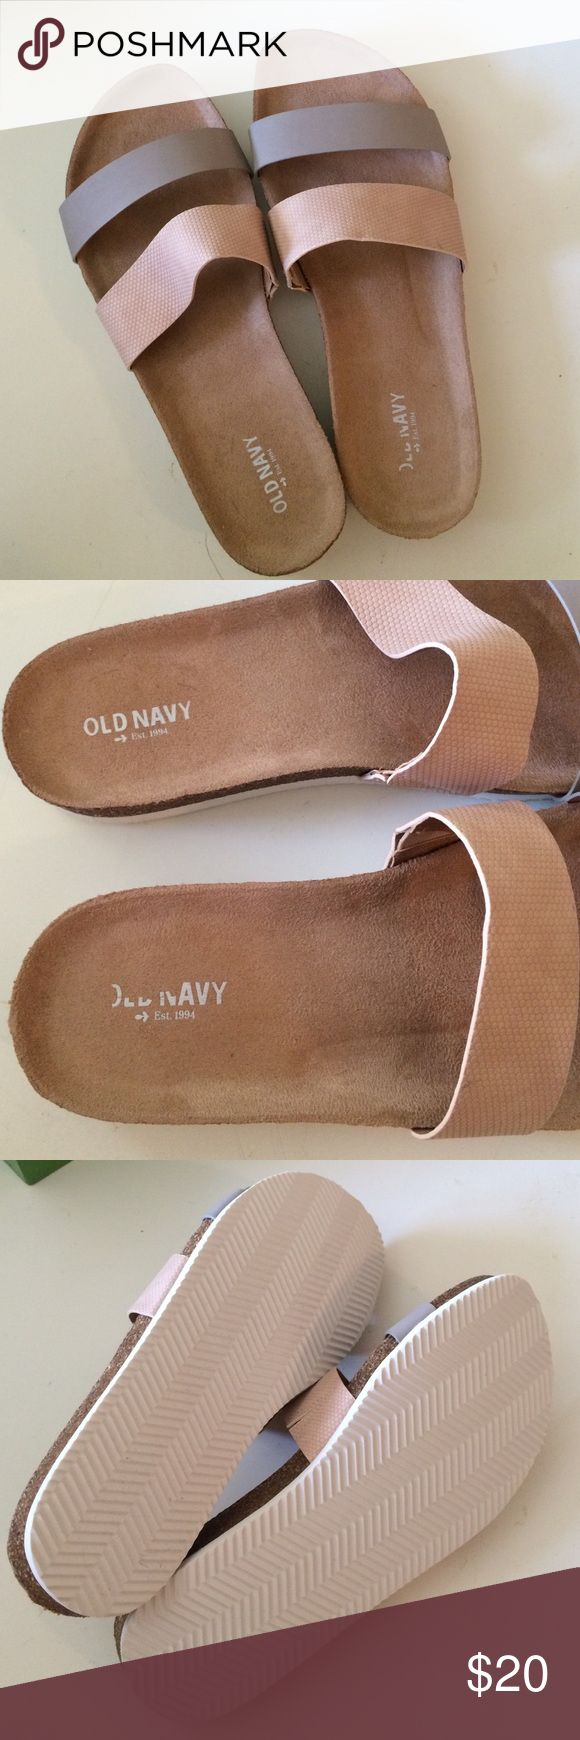 Old Navy slippers - Size 8 - NWOT Selling a new pair of Old Navy slippers. These are very cool and sleek looking and comfortable on top!! Old Navy Shoes Slippers